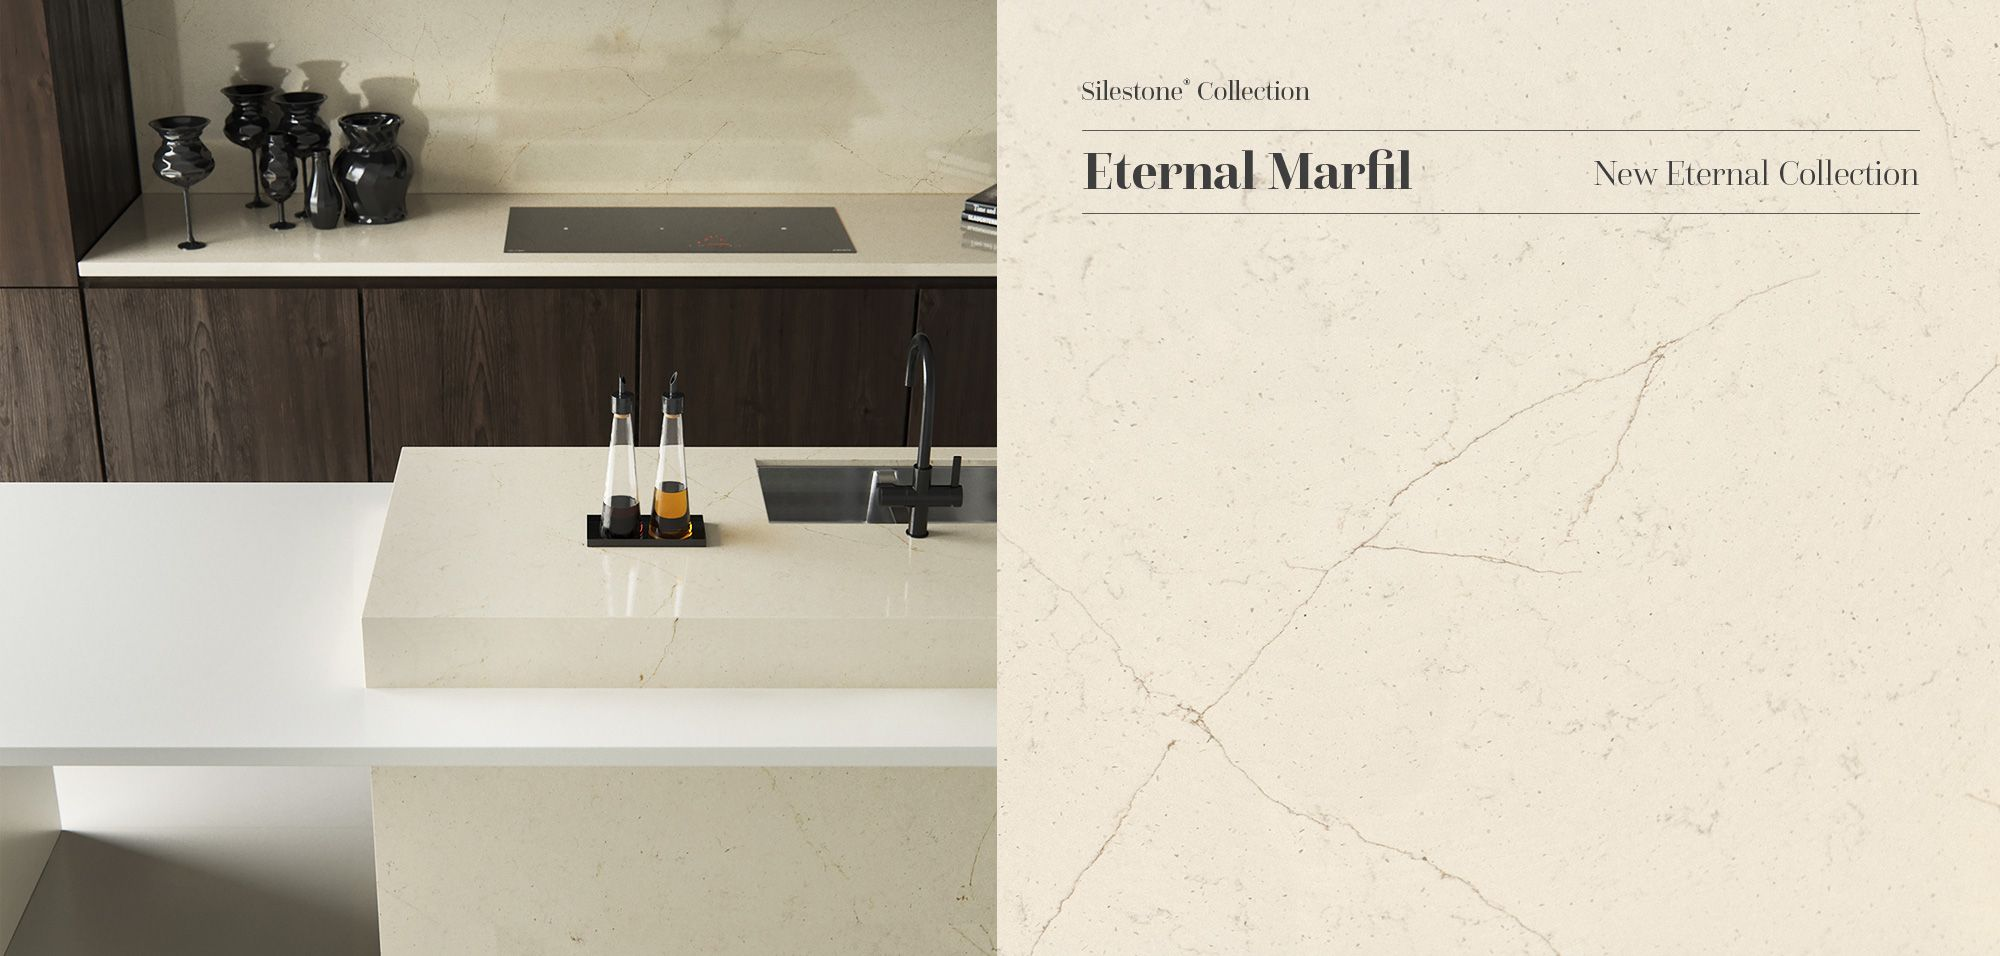 Creamy Soft Minimalist And Topsontop New Silestone Eternal Marfil Puts A Unique Spin On Crema Marfil Marble To Br Silestone Funky Kitchen Silestone Kitchen